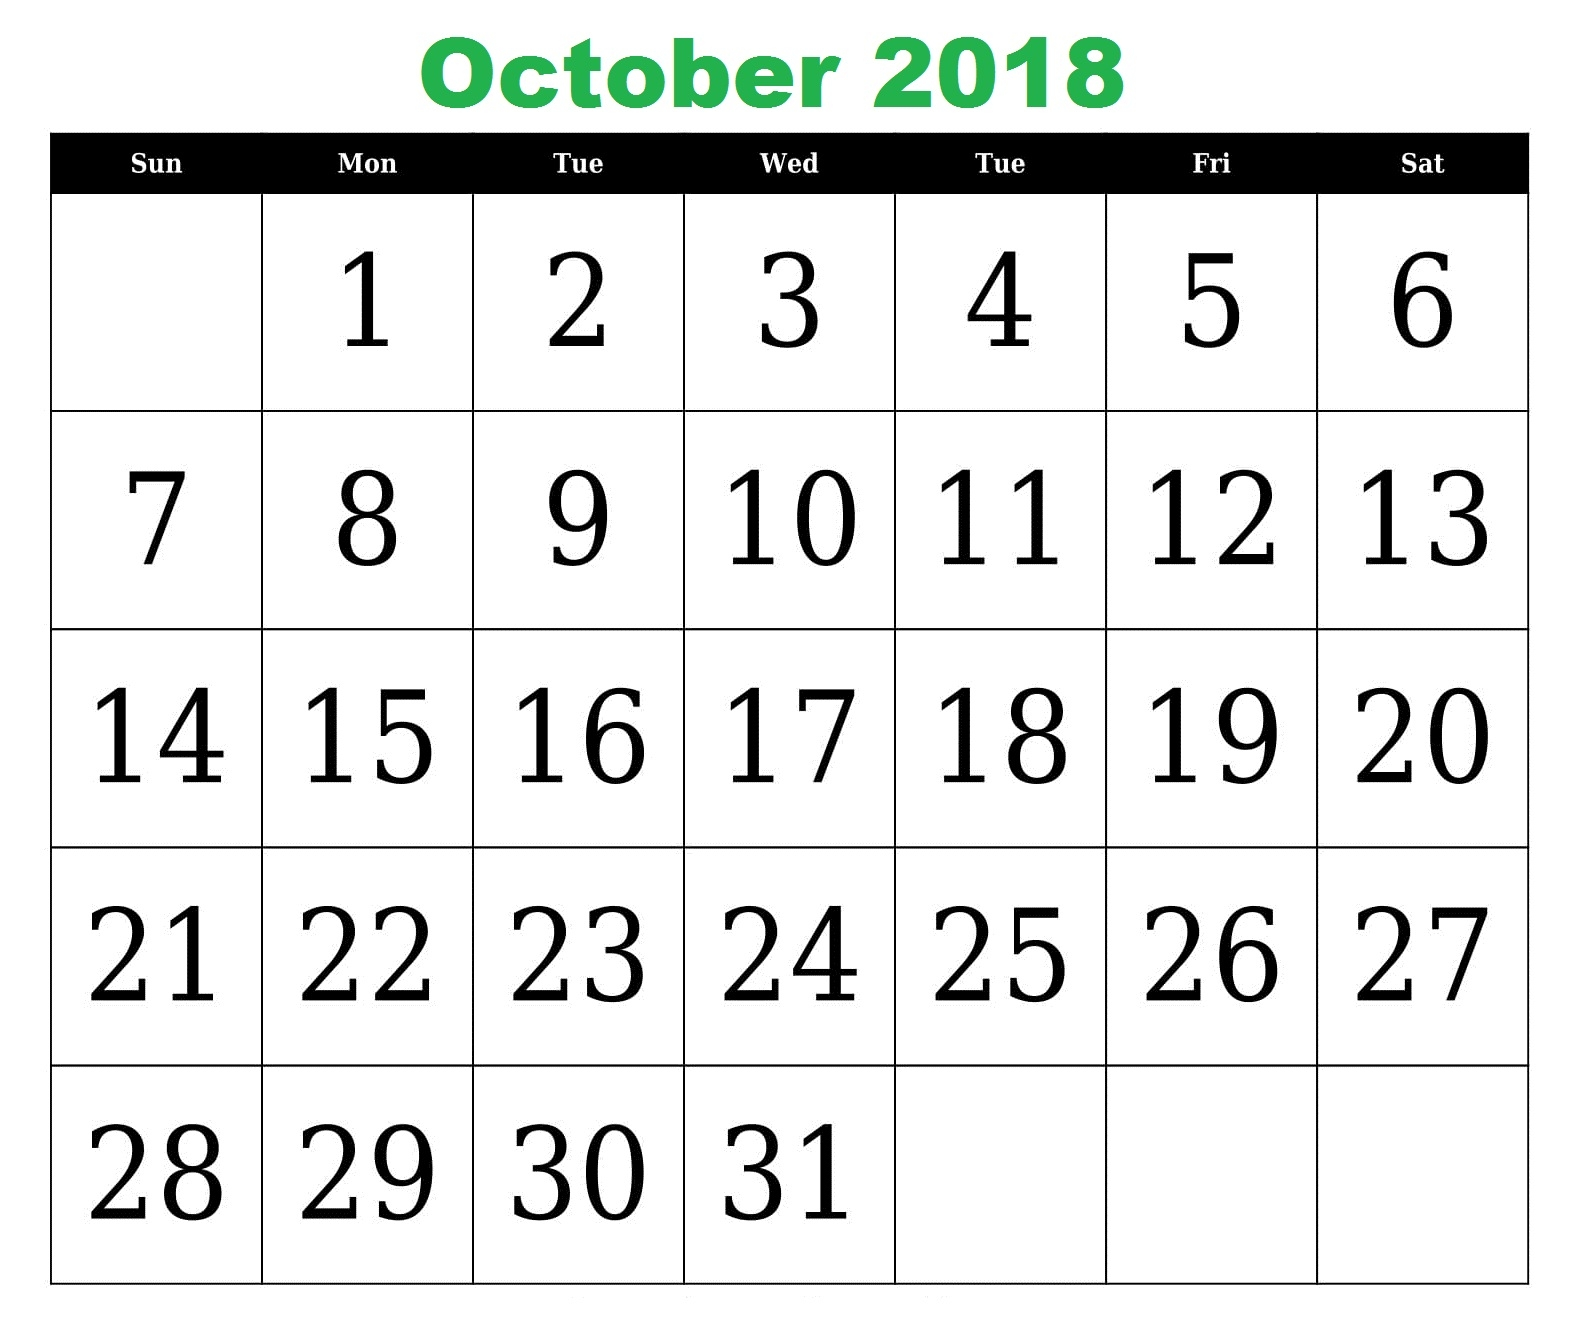 download free printable october 2018 editable calendar october October 2018 Calendar Free erdferdf